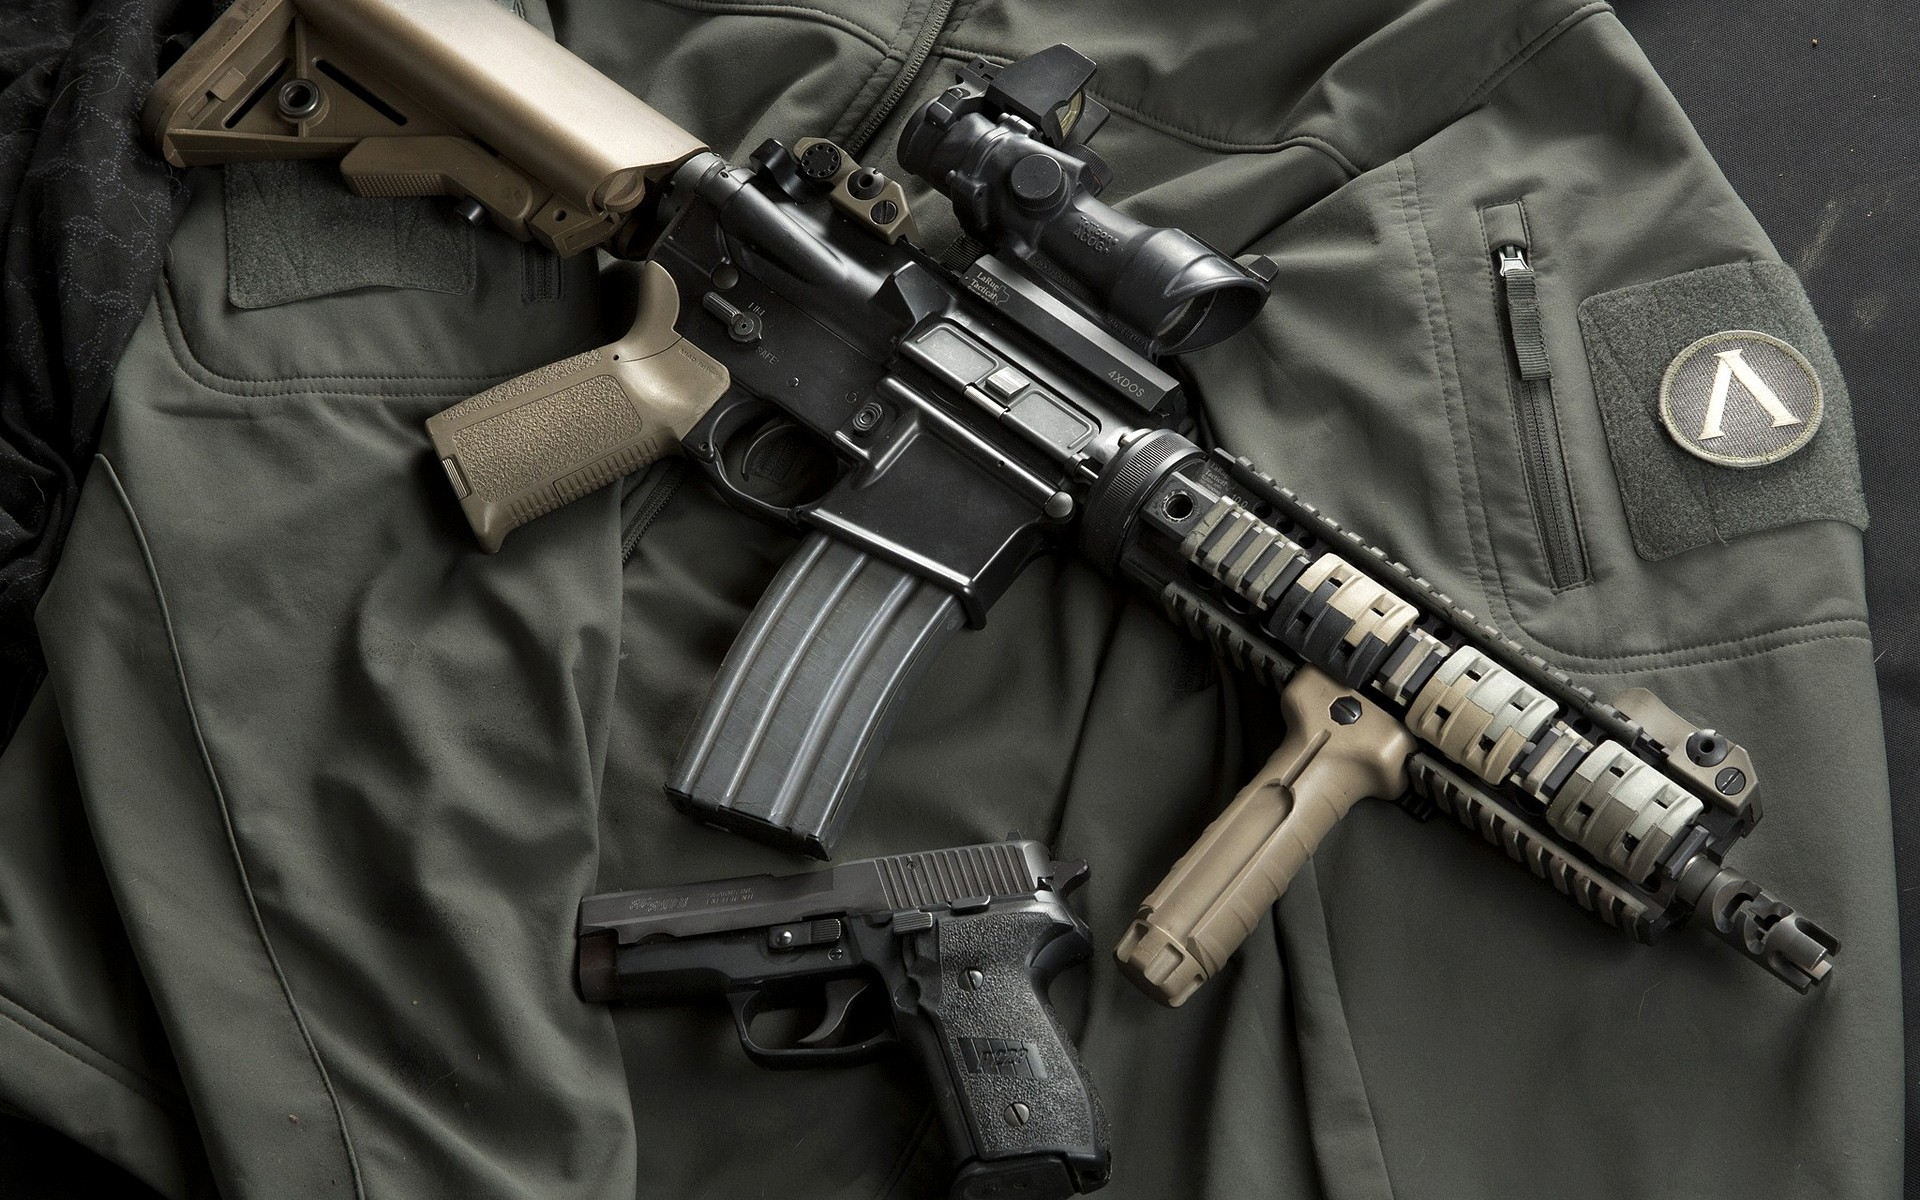 Ar 15 Assault Rifle Computer Wallpapers Desktop Backgrounds 1920x1200